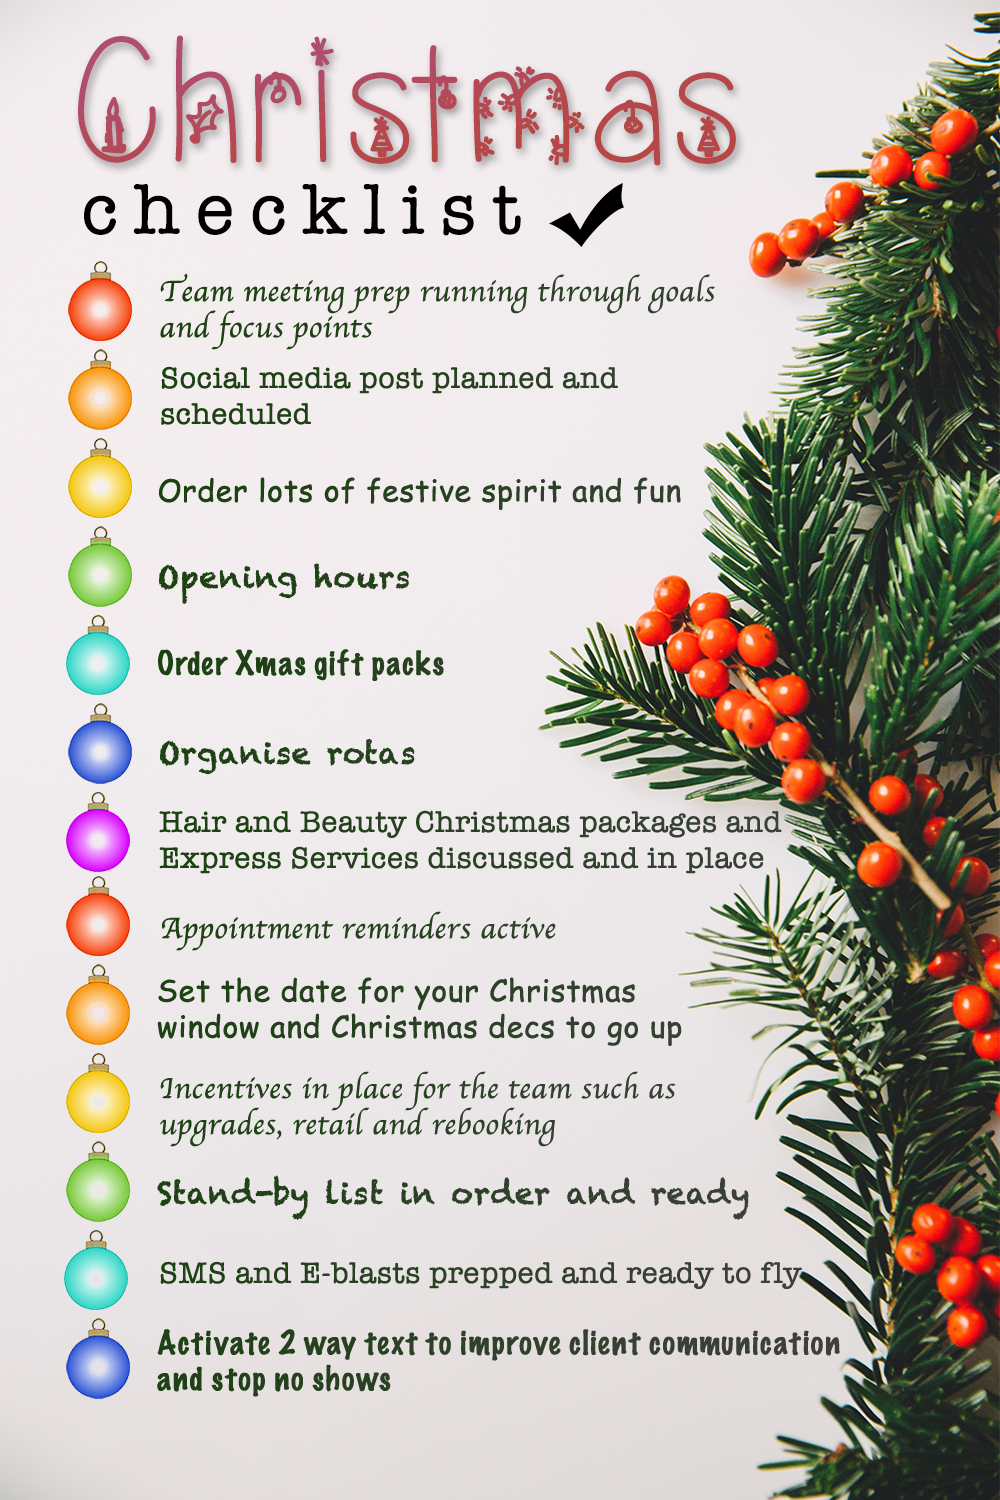 Christmas salon check list